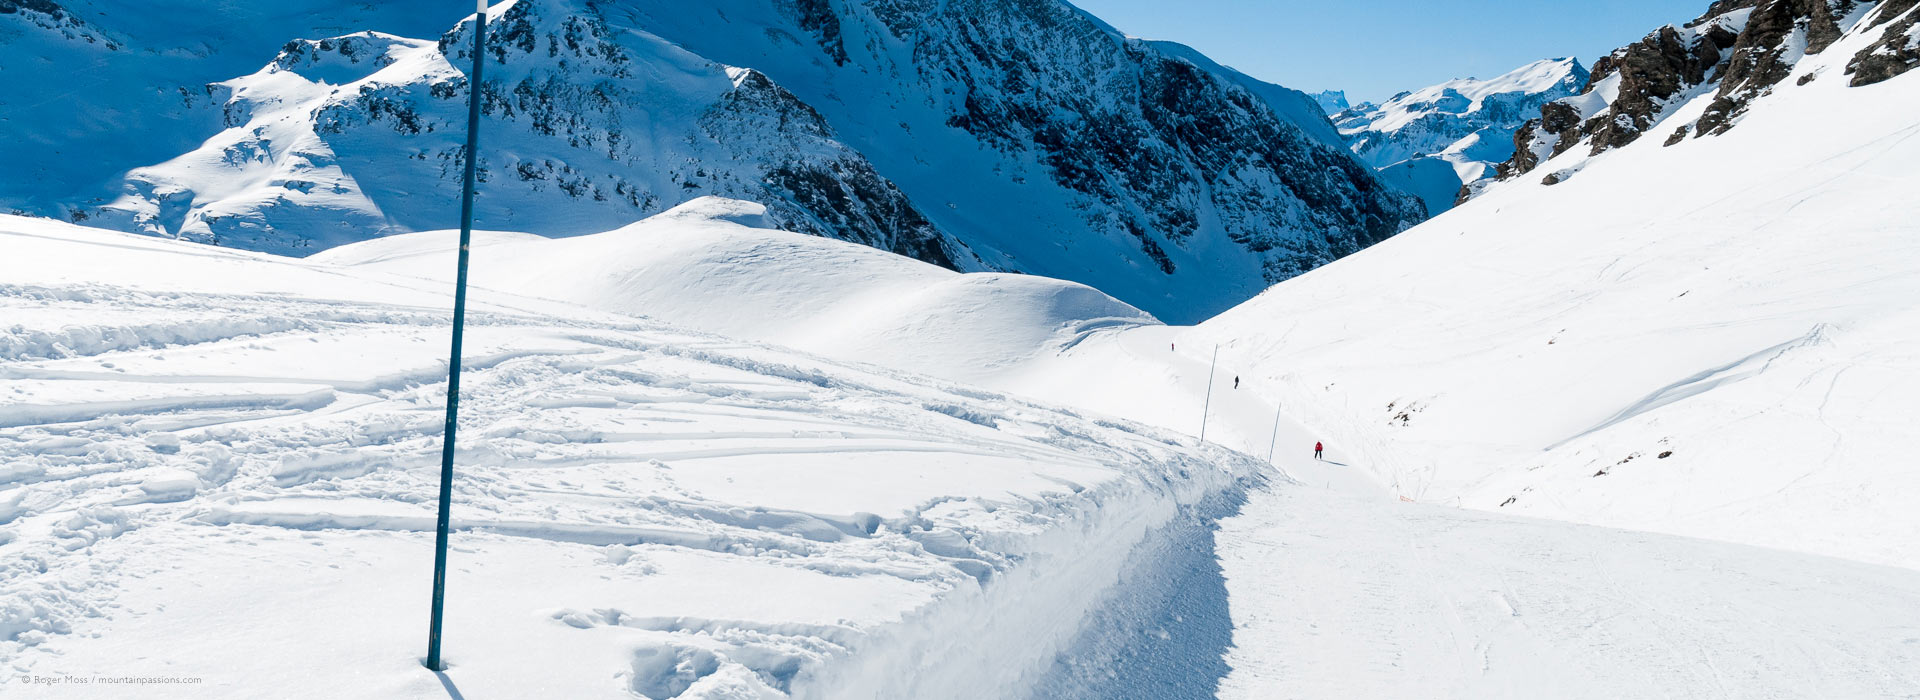 Low, wide skier's-eye view ofpiste and snow-covered mountains at Valfrejus